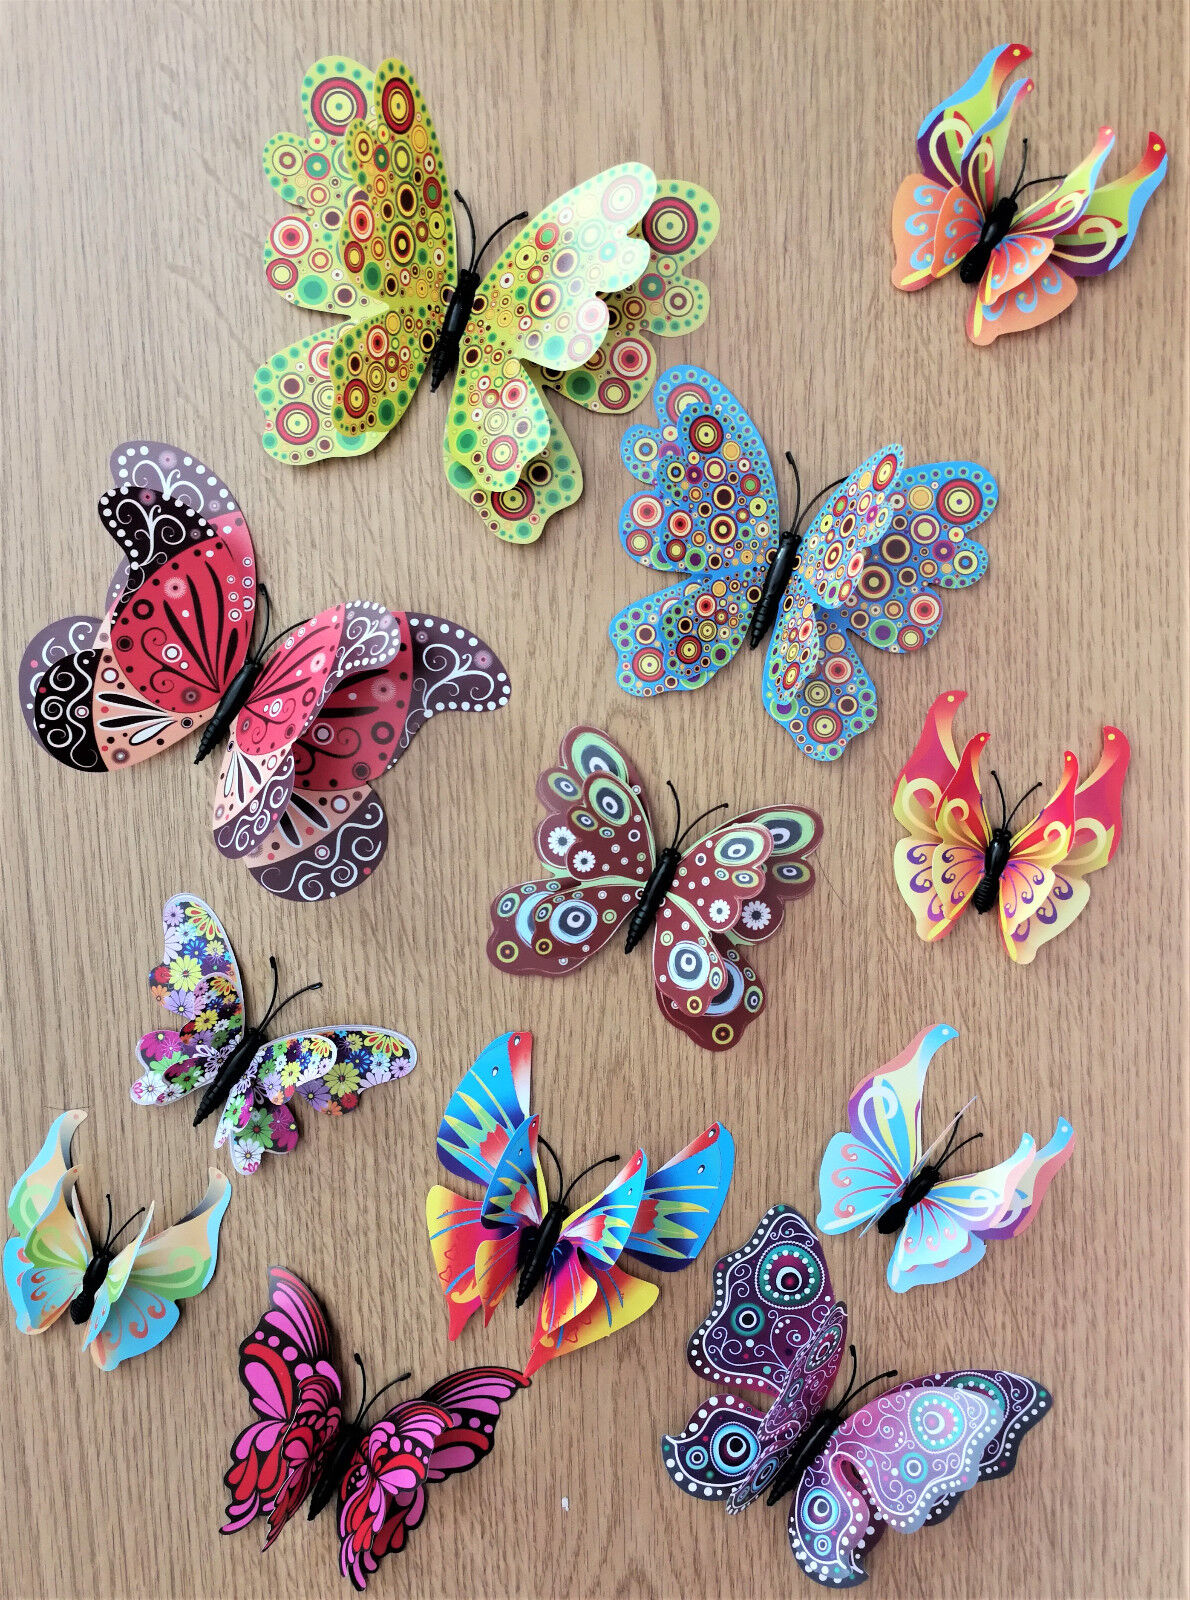 Home Decoration - 3D Butterfly Home Decor Wall Decoration Stickers Magnet 12 Pcs - 54 designs